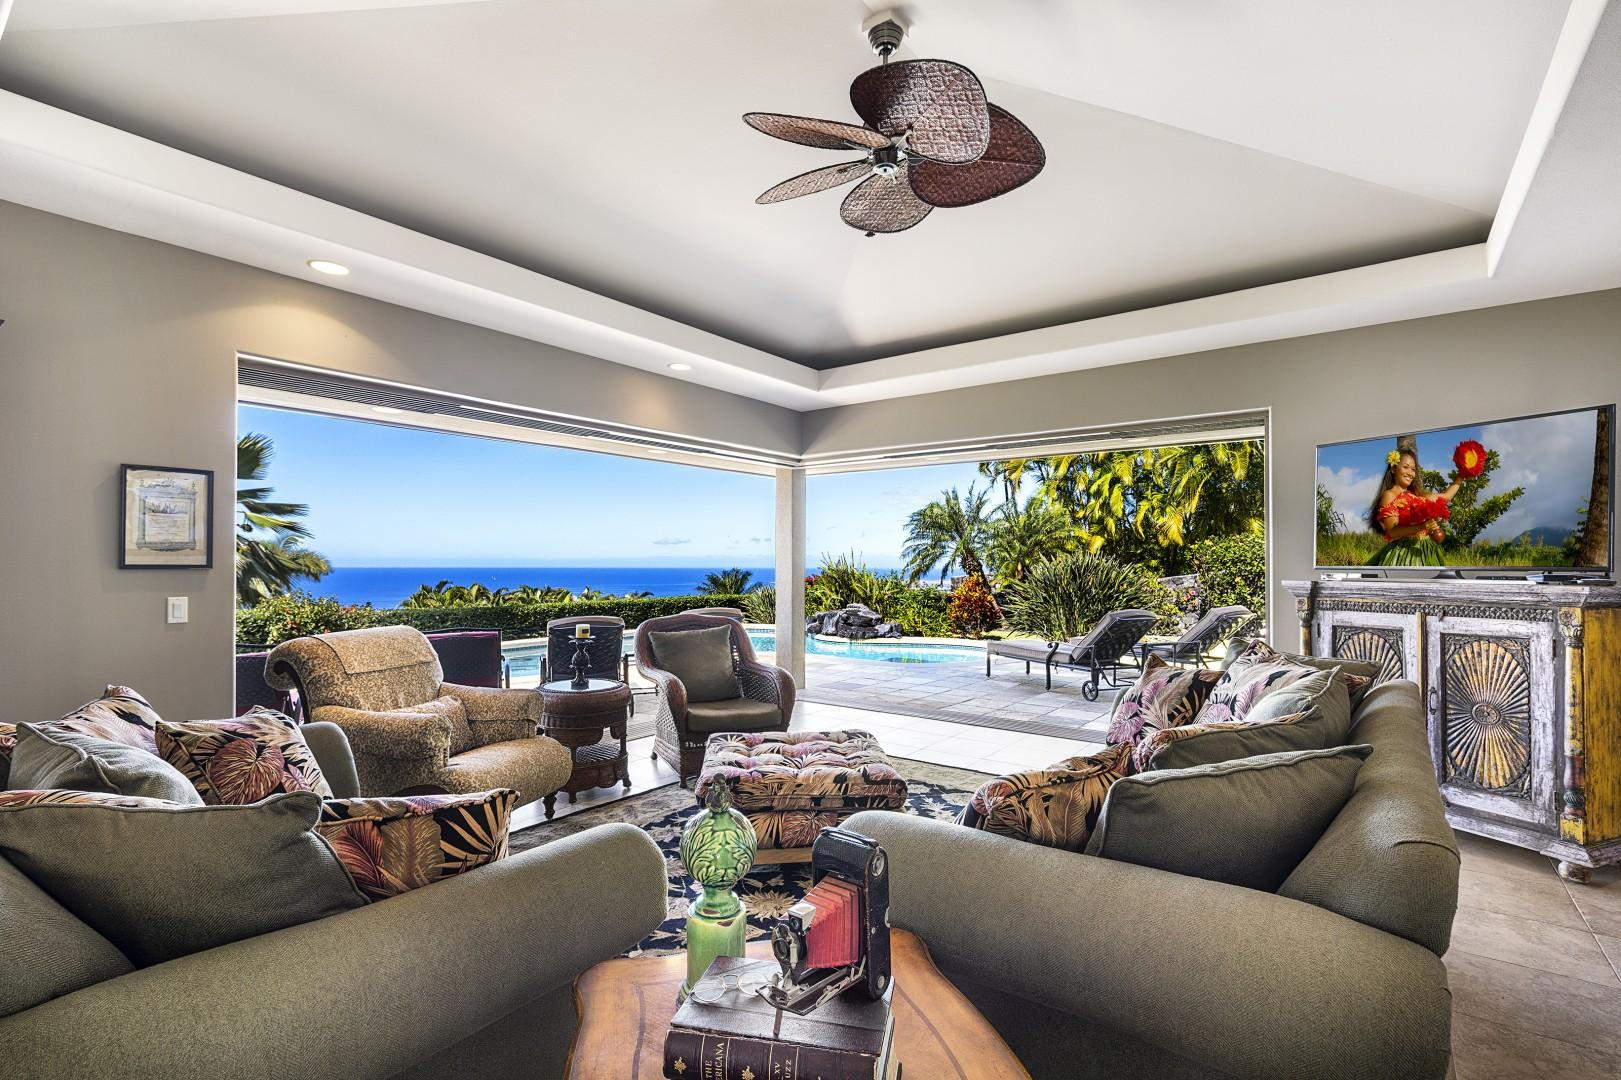 Large pocket doors bring the outside in with this Tropical design!